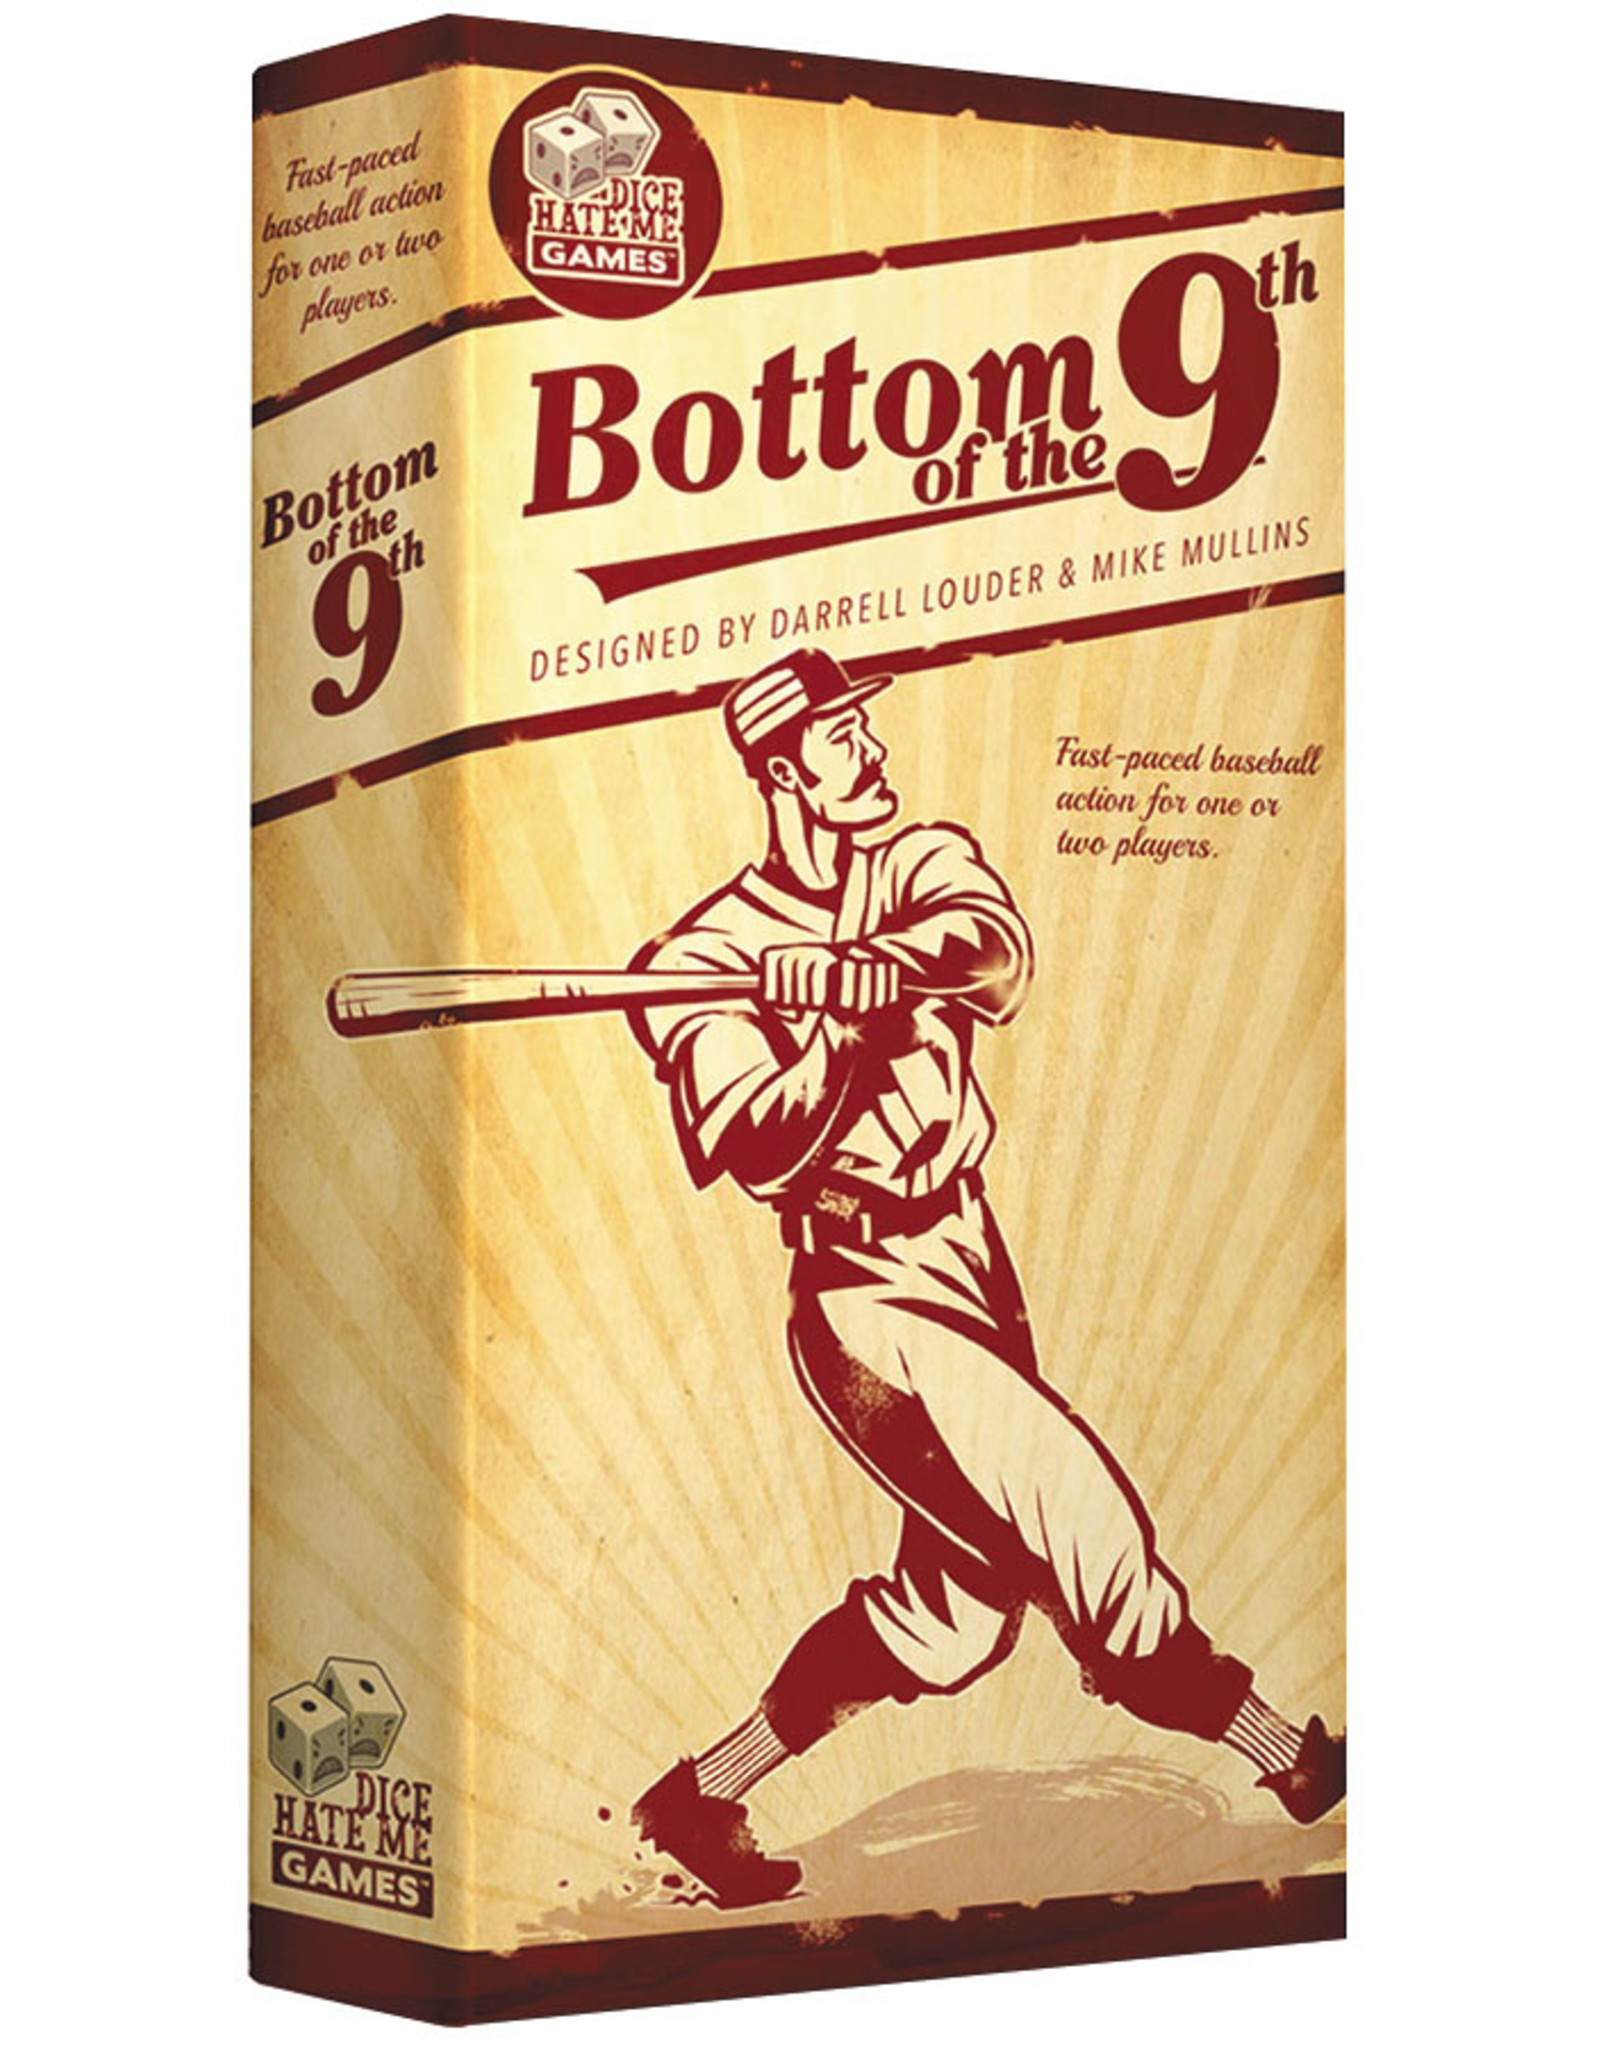 Dice Hate Me Games Bottom of the Ninth